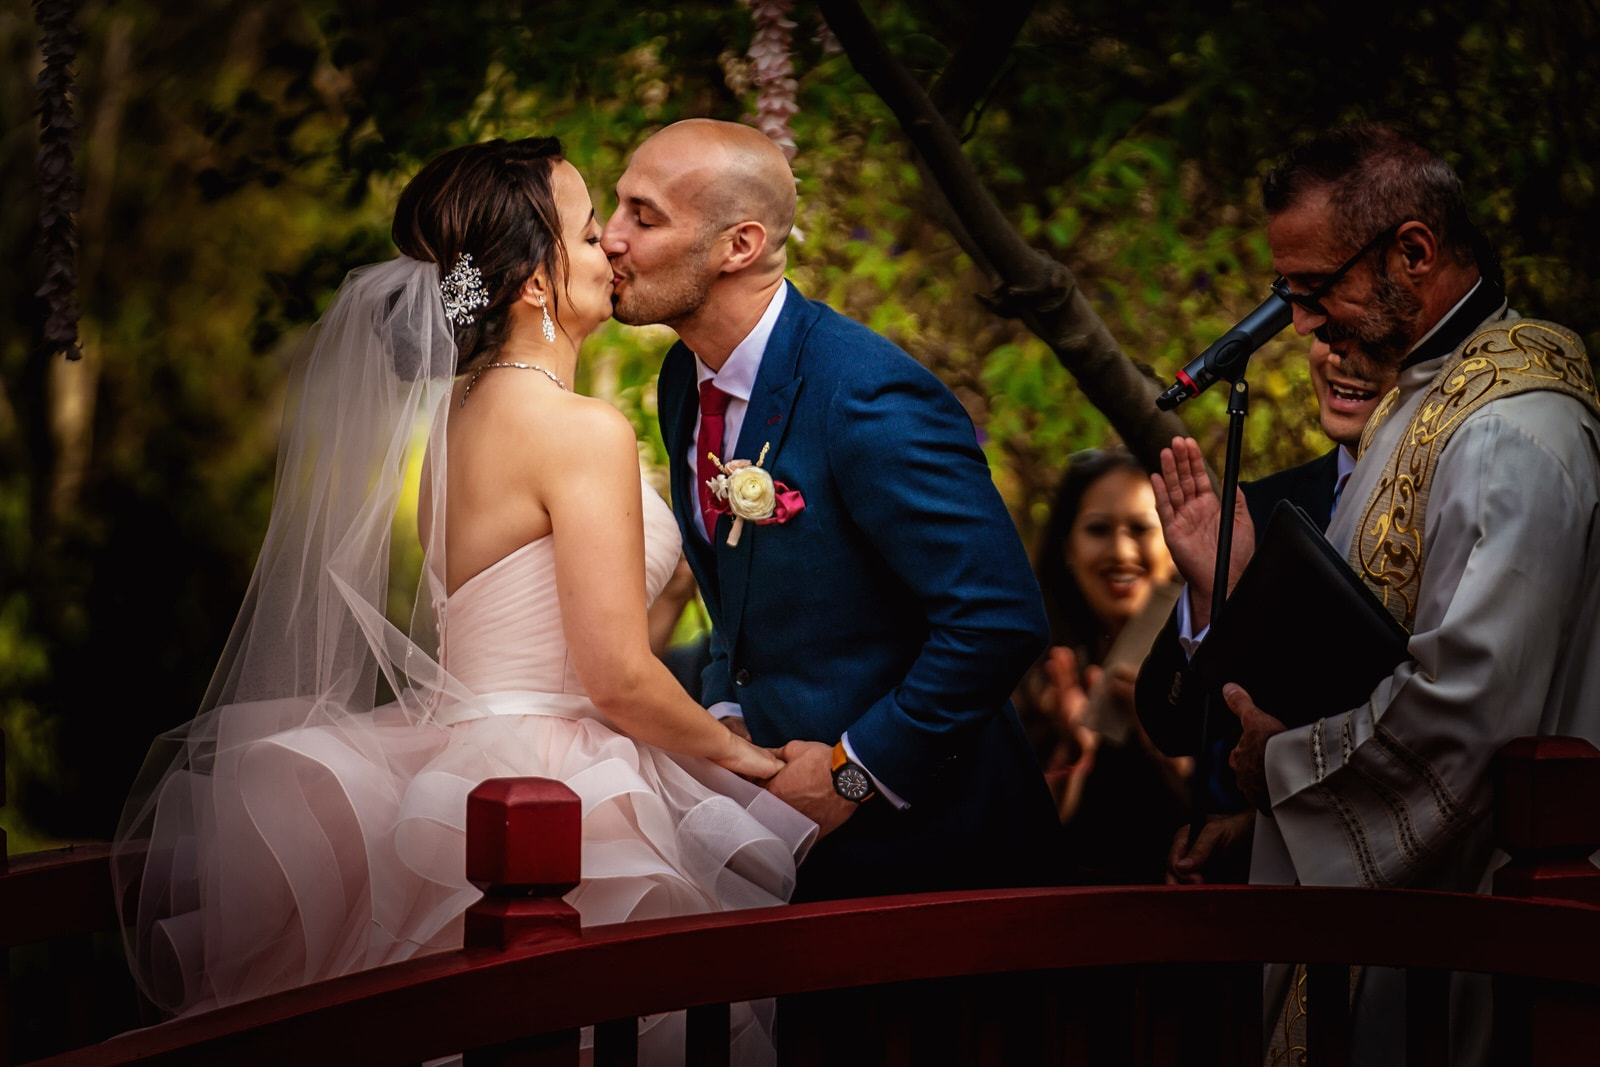 A Spring Wedding at The Langham Huntington Hotel in Pasadena, Michael Anthony Photography Blog: Los Angeles Wedding Photography